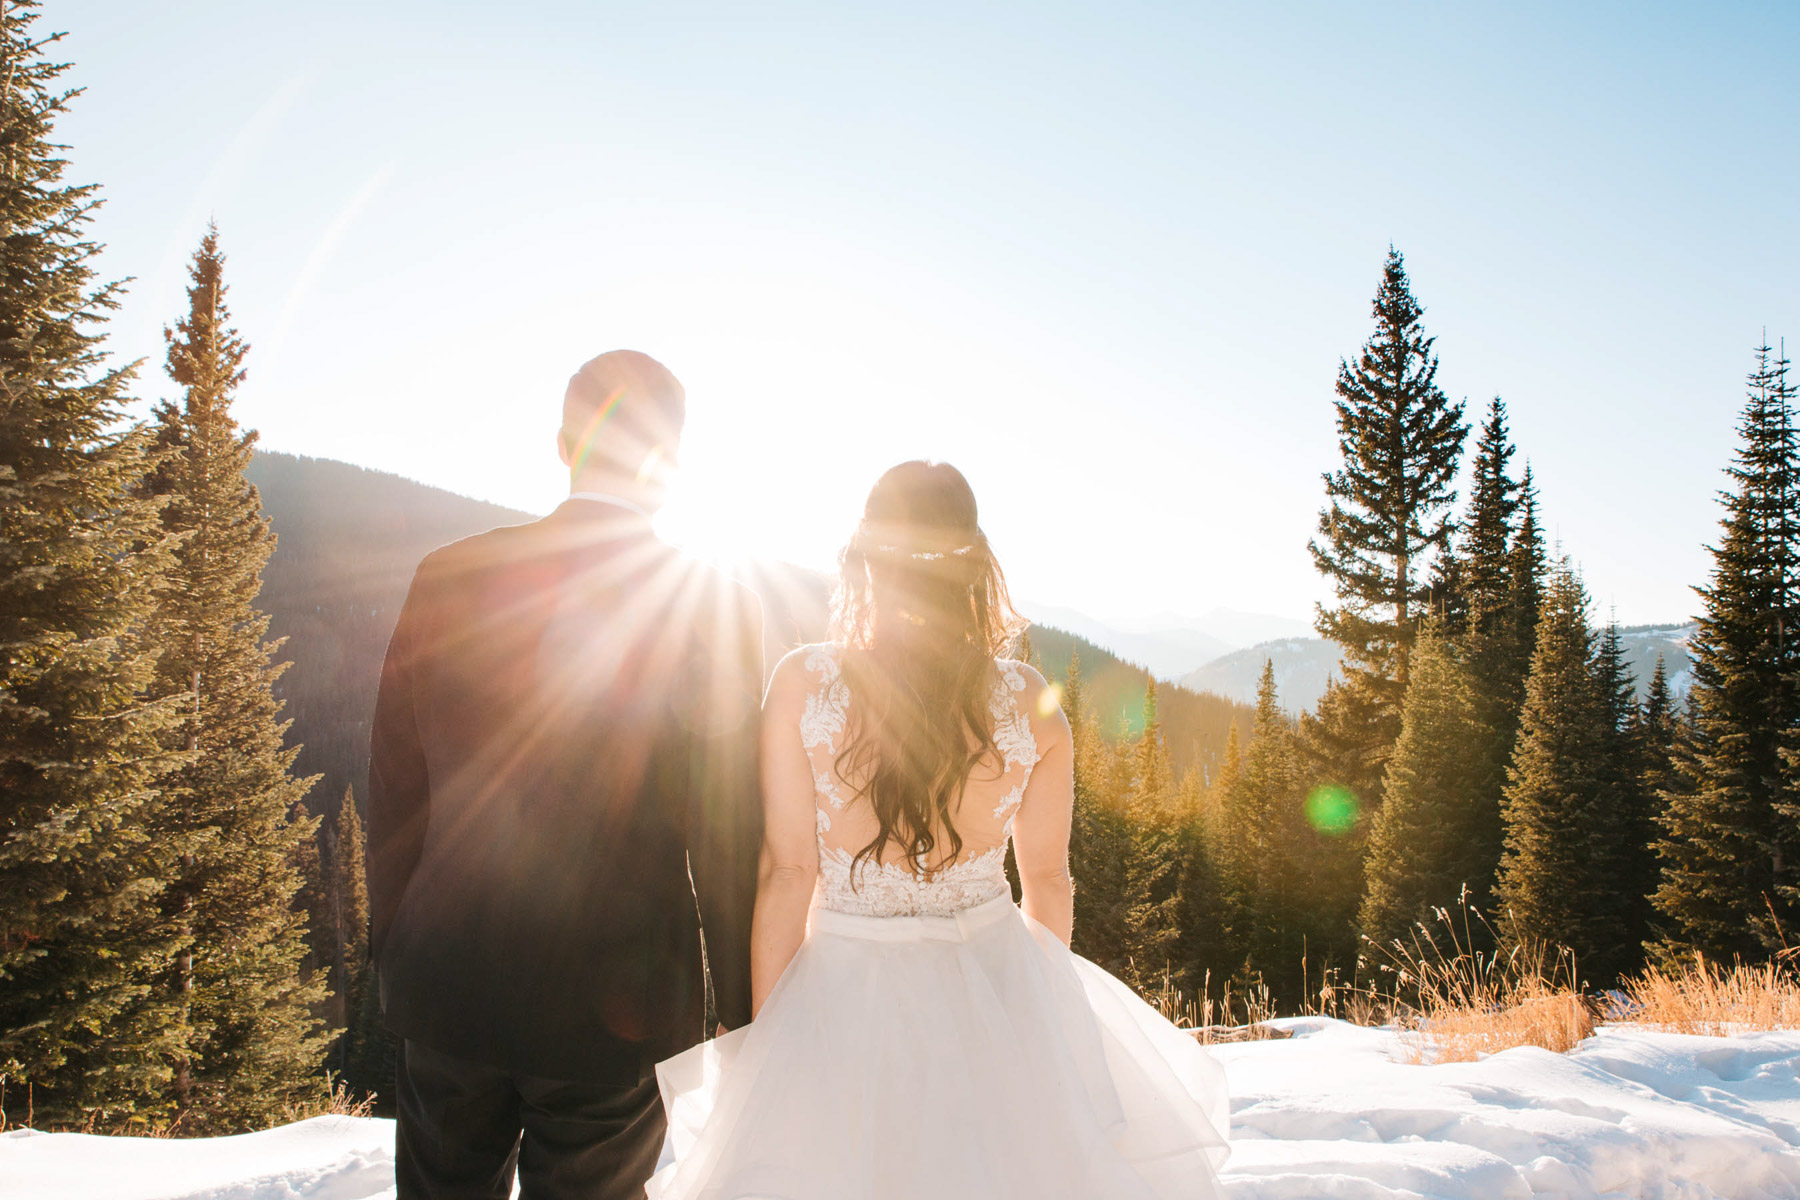 113colorado-mountain-wedding-photographer-denver-colorado-mountain-weddings-intimate-weddings-destination-colorado-rocky-mountain-wedding-photographer_snowmobile-elopement-adventure-elopement-colorado-elopement-photographer-stylzed-shoot-dec2017-907.jpg